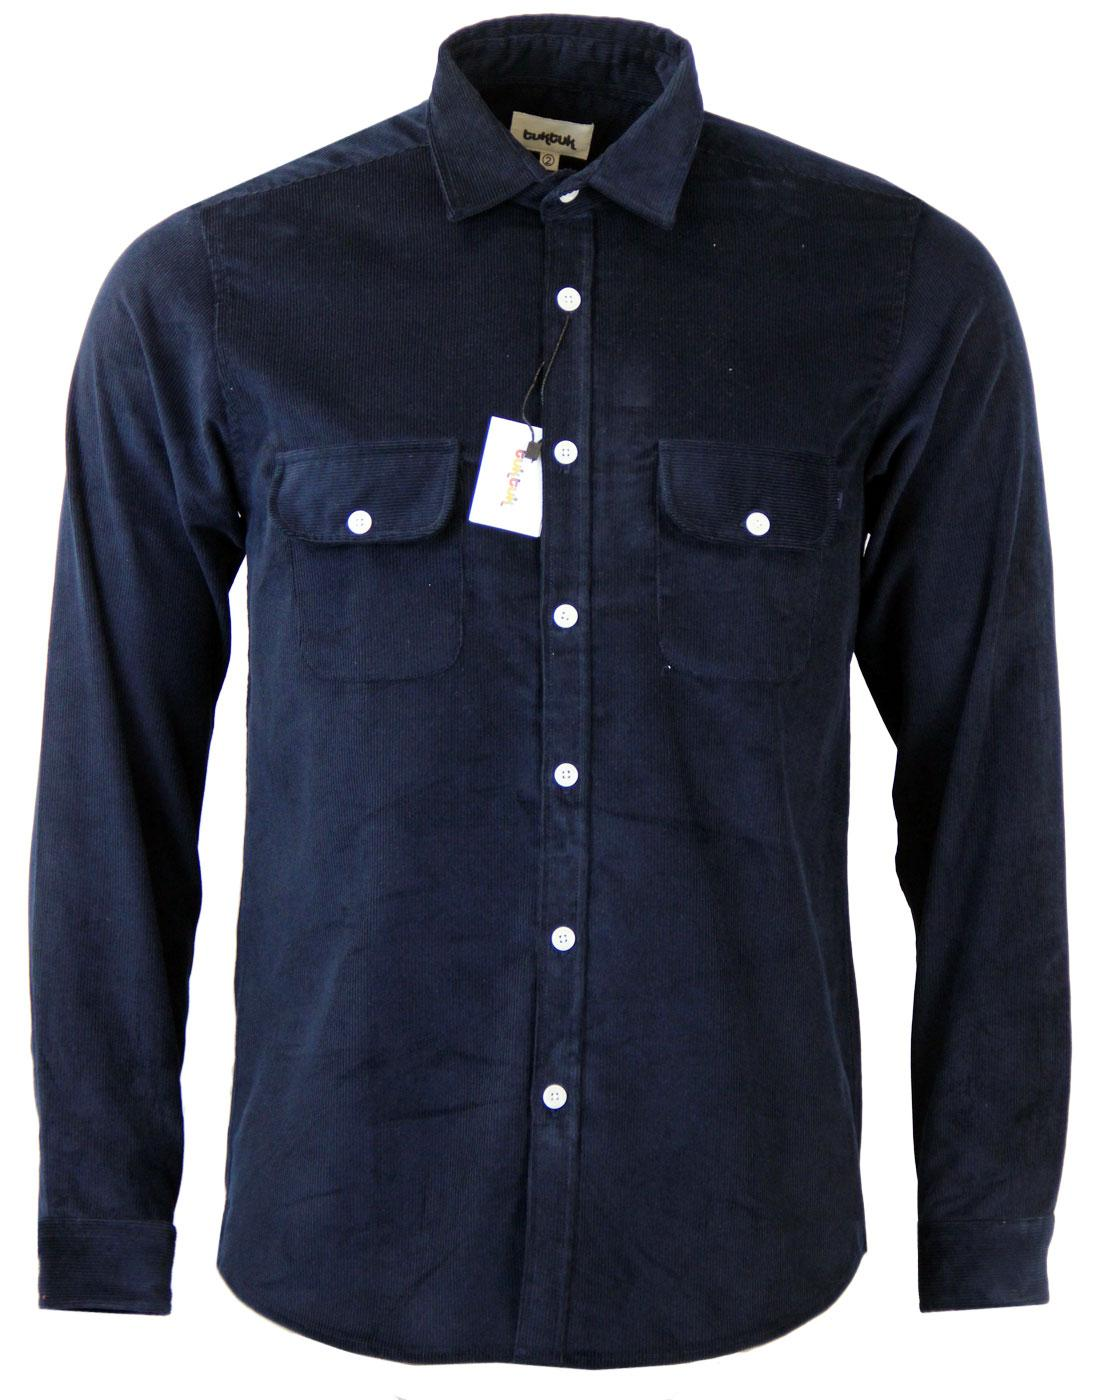 TUKTUK Retro Indie Mod Cord Worker Over Shirt (N)